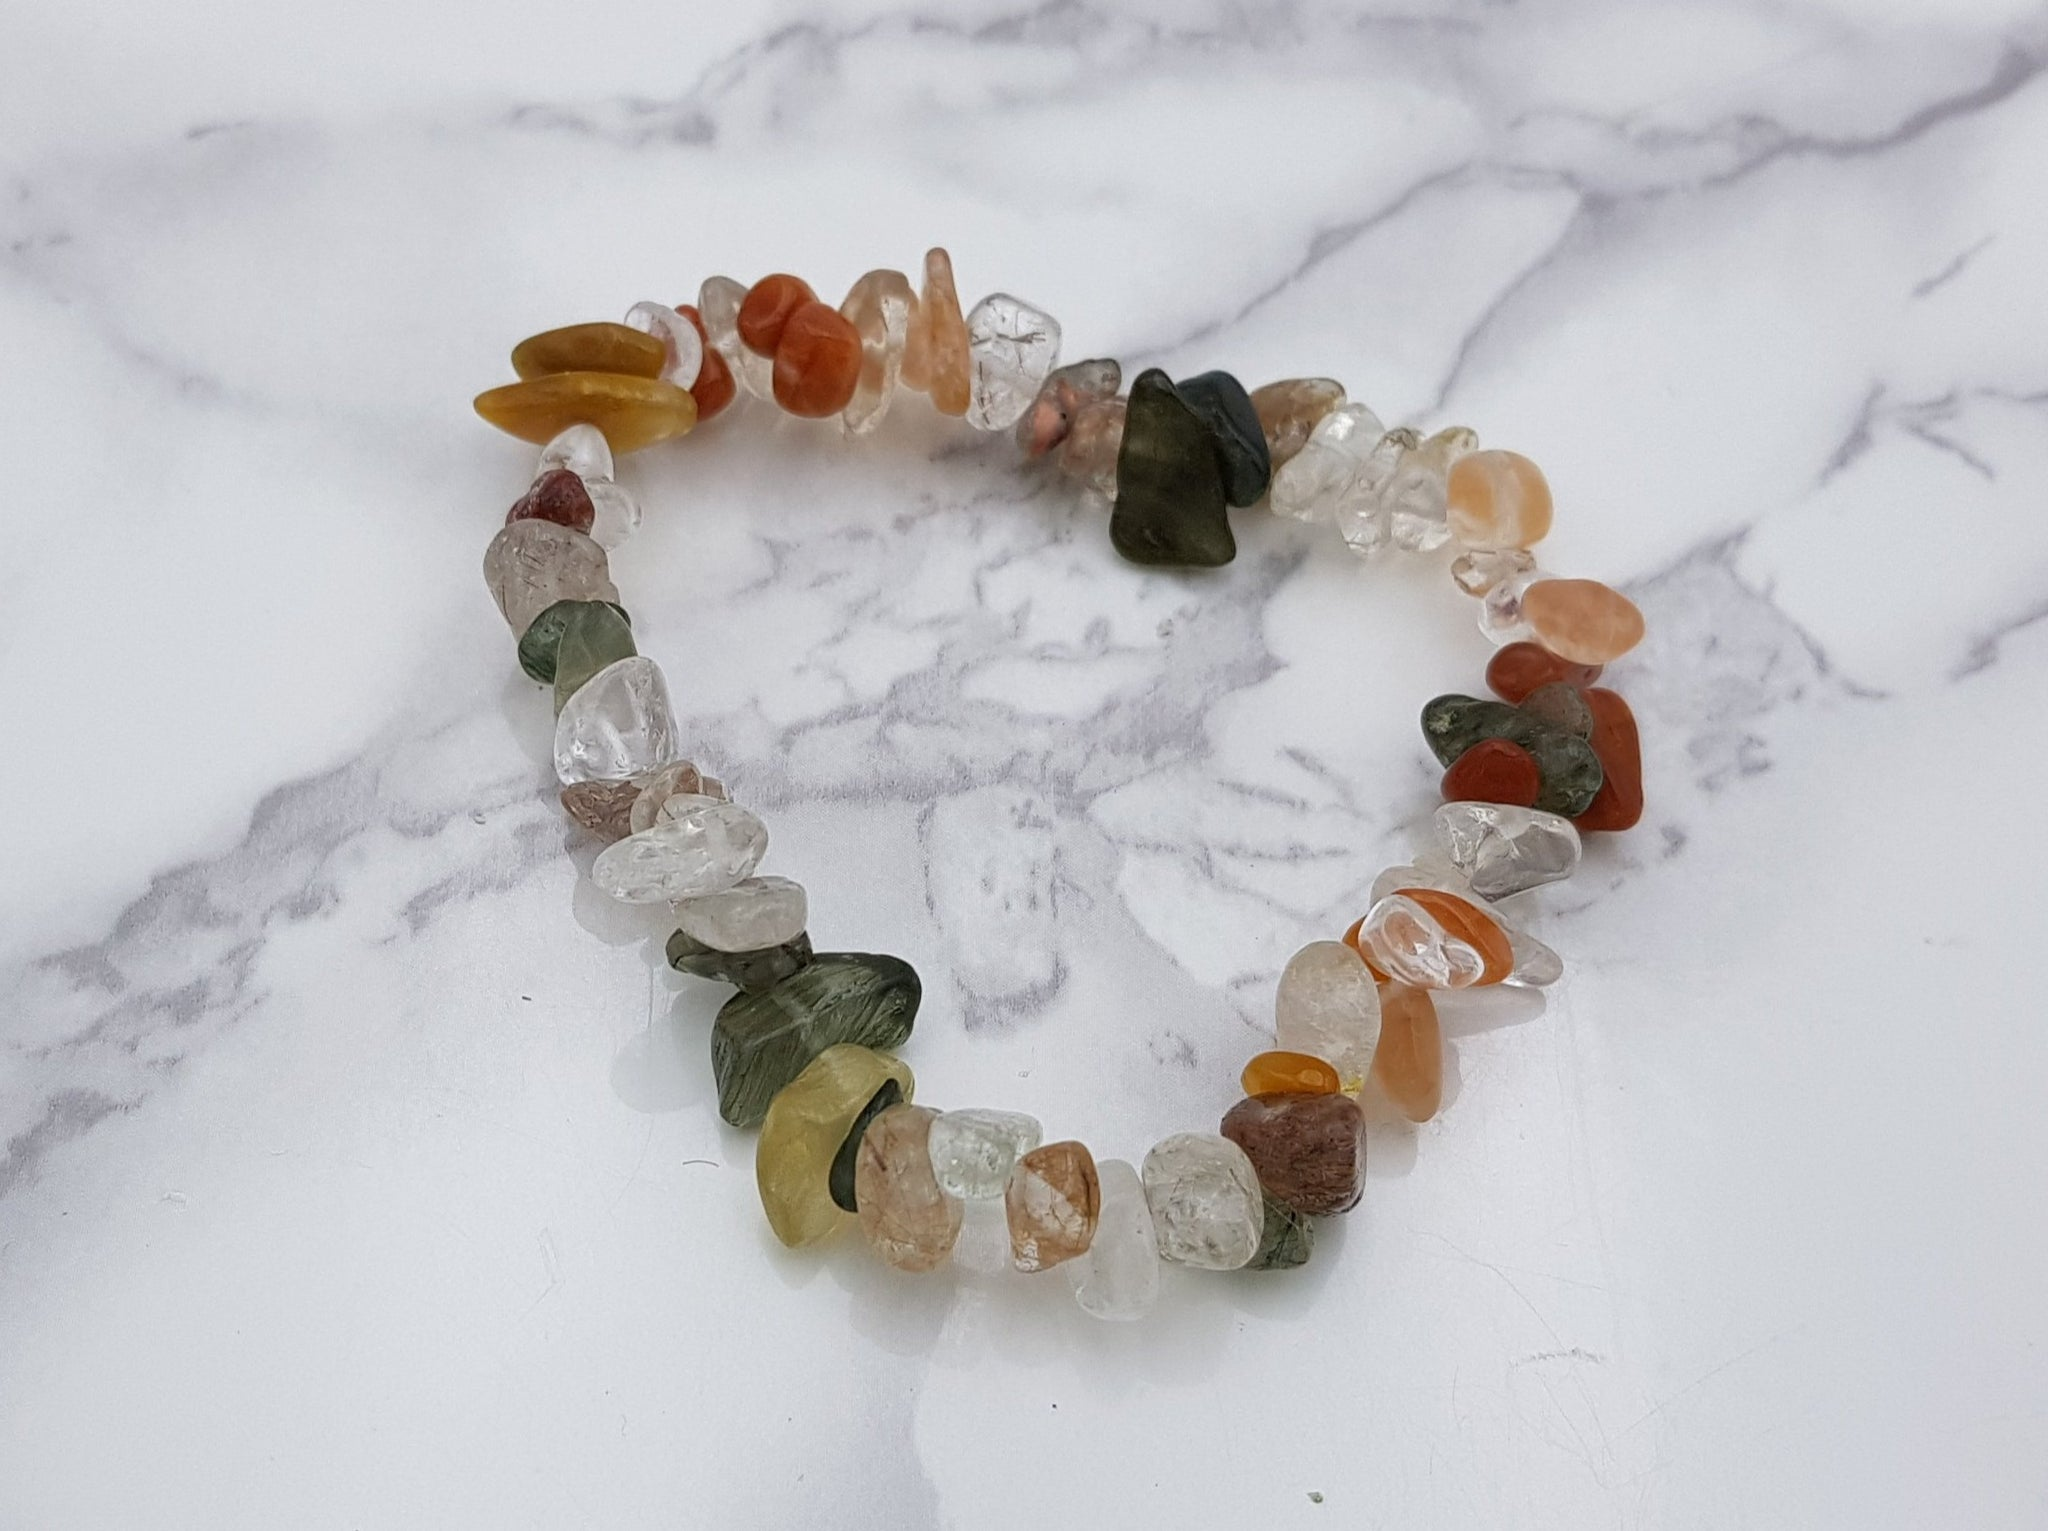 Mixed Rutile Quartz Chip Bracelet - Earth's Treasures